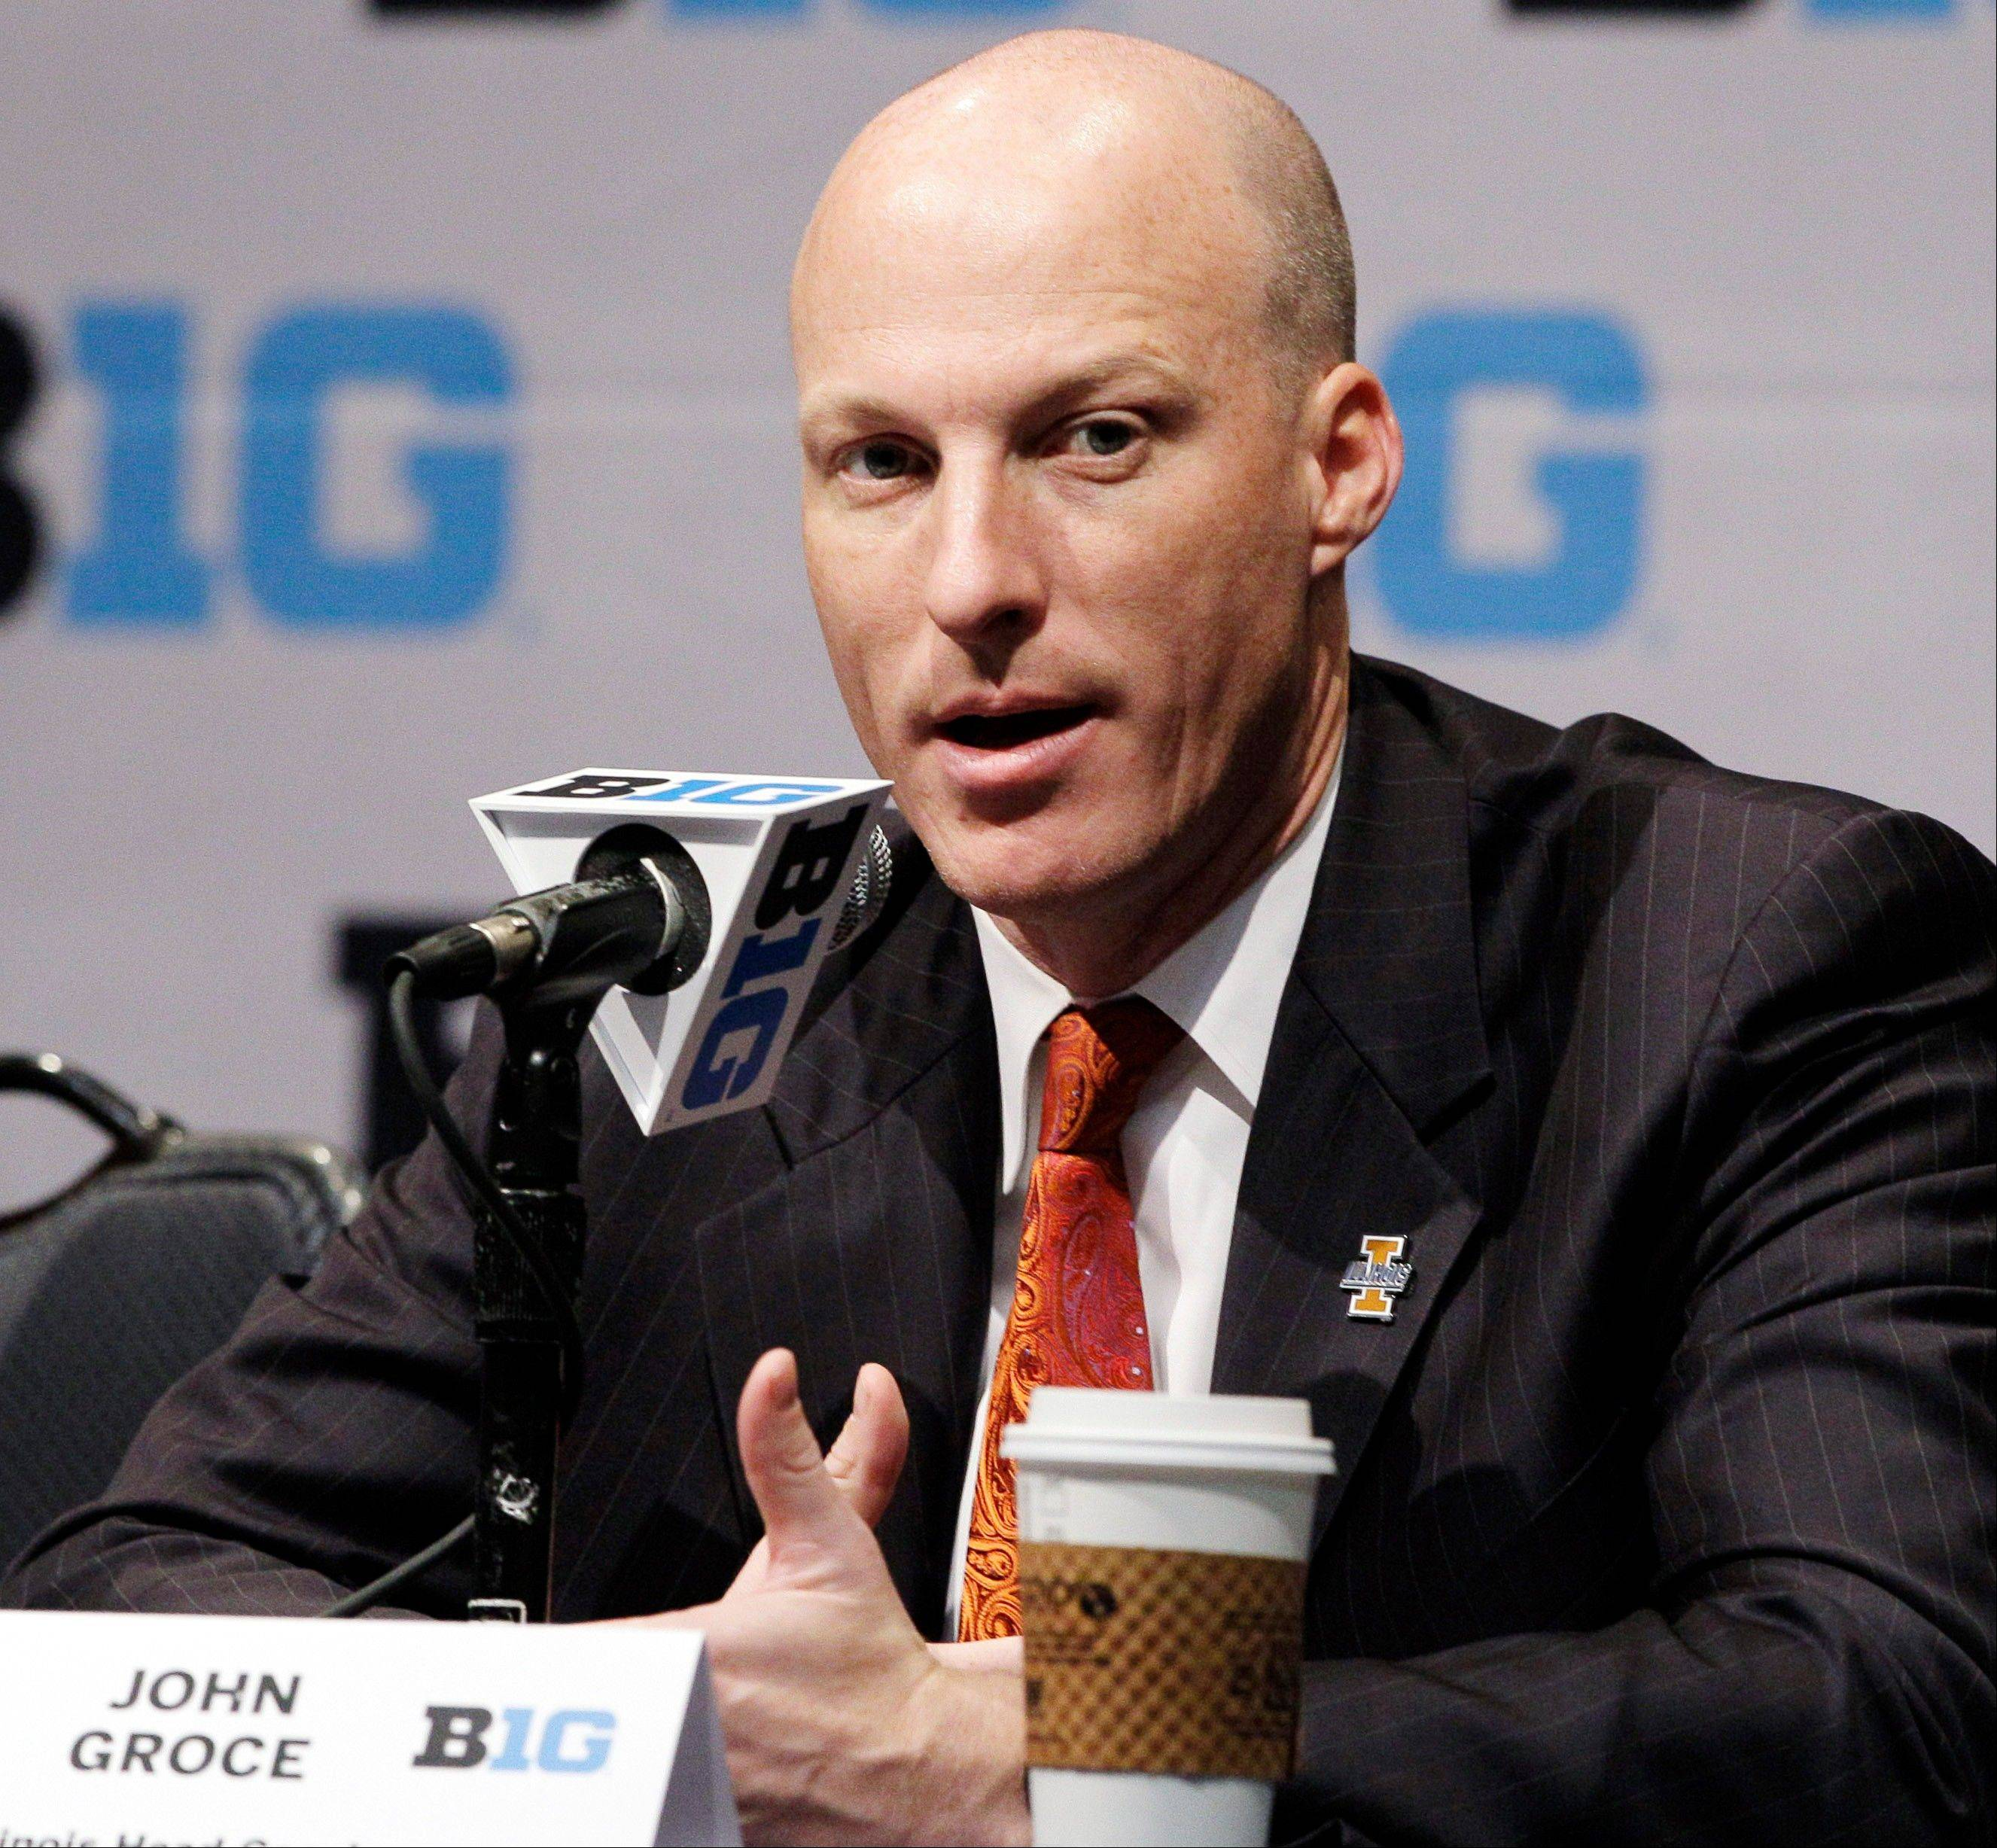 Illinois head coach John Groce expects his team to get better every day, but with five Big Ten schools in the Top 25 nationally, the Illini will be facing a big challenge in the conference.